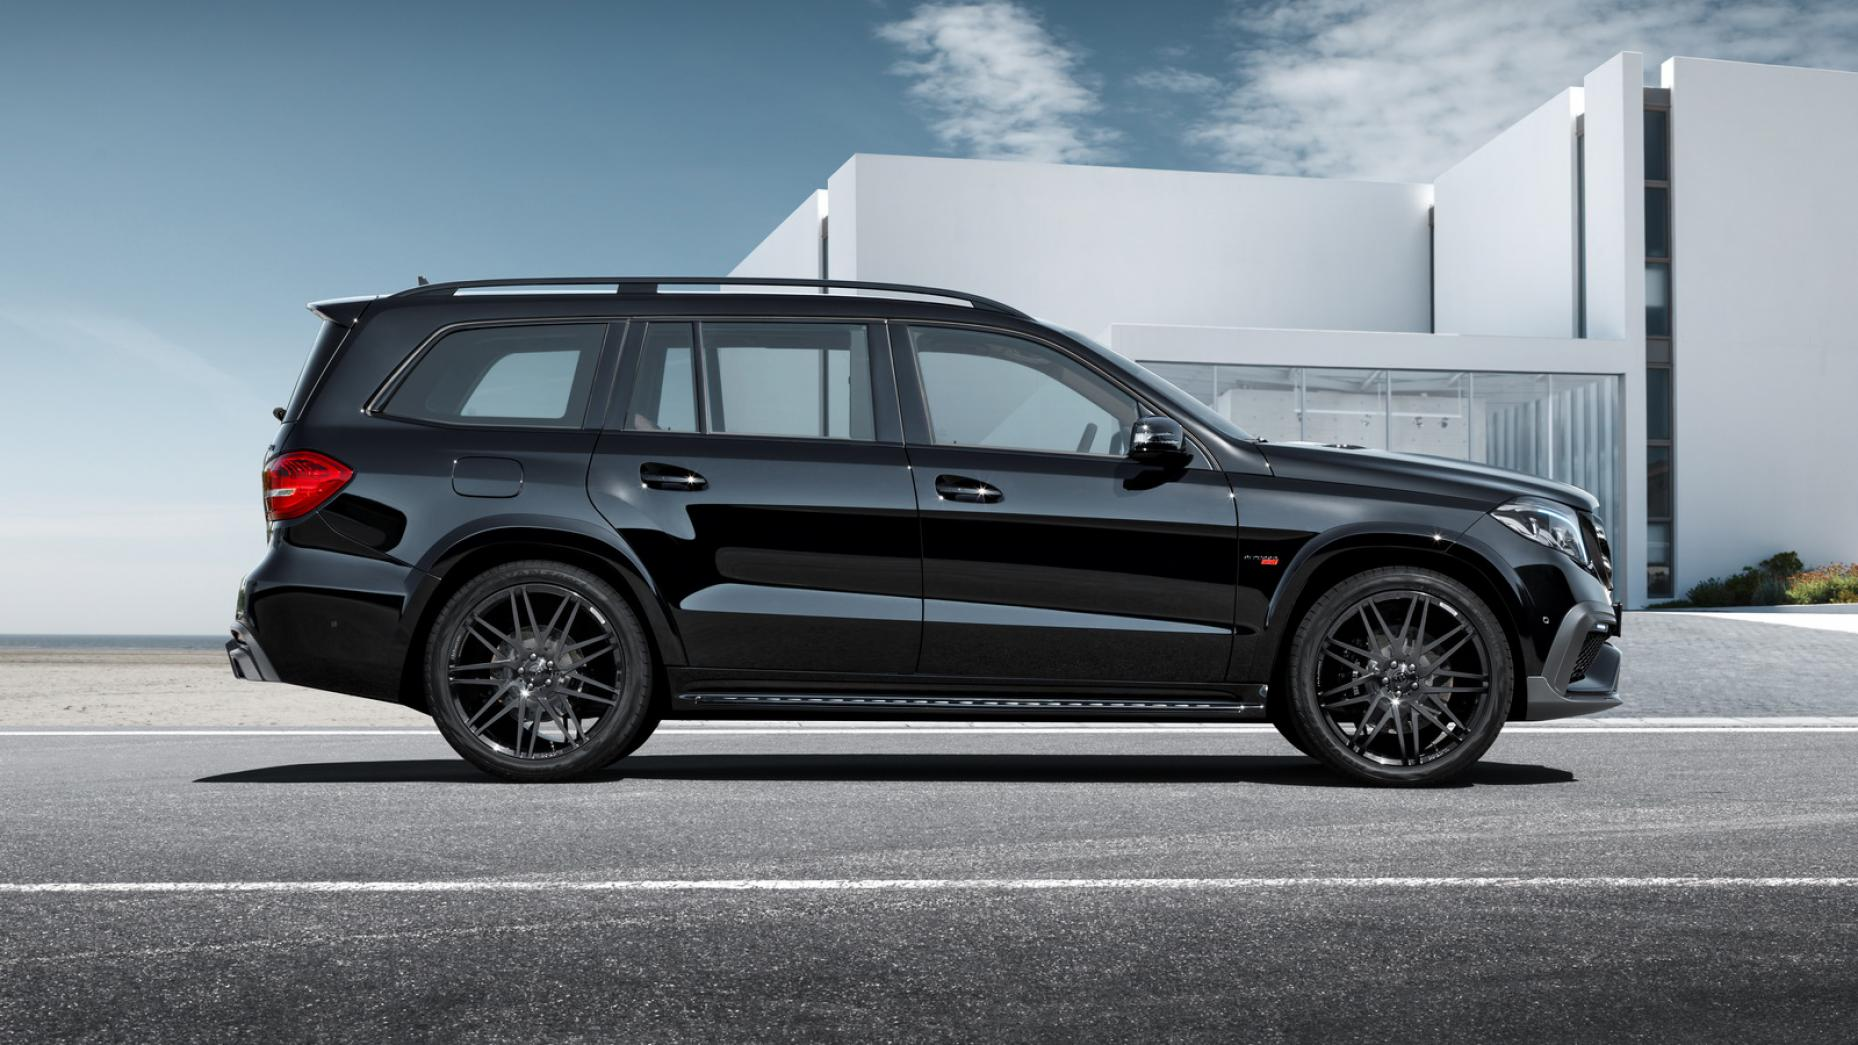 5 cool stuff about the brabus package for the mercedes amg gls 63. Black Bedroom Furniture Sets. Home Design Ideas